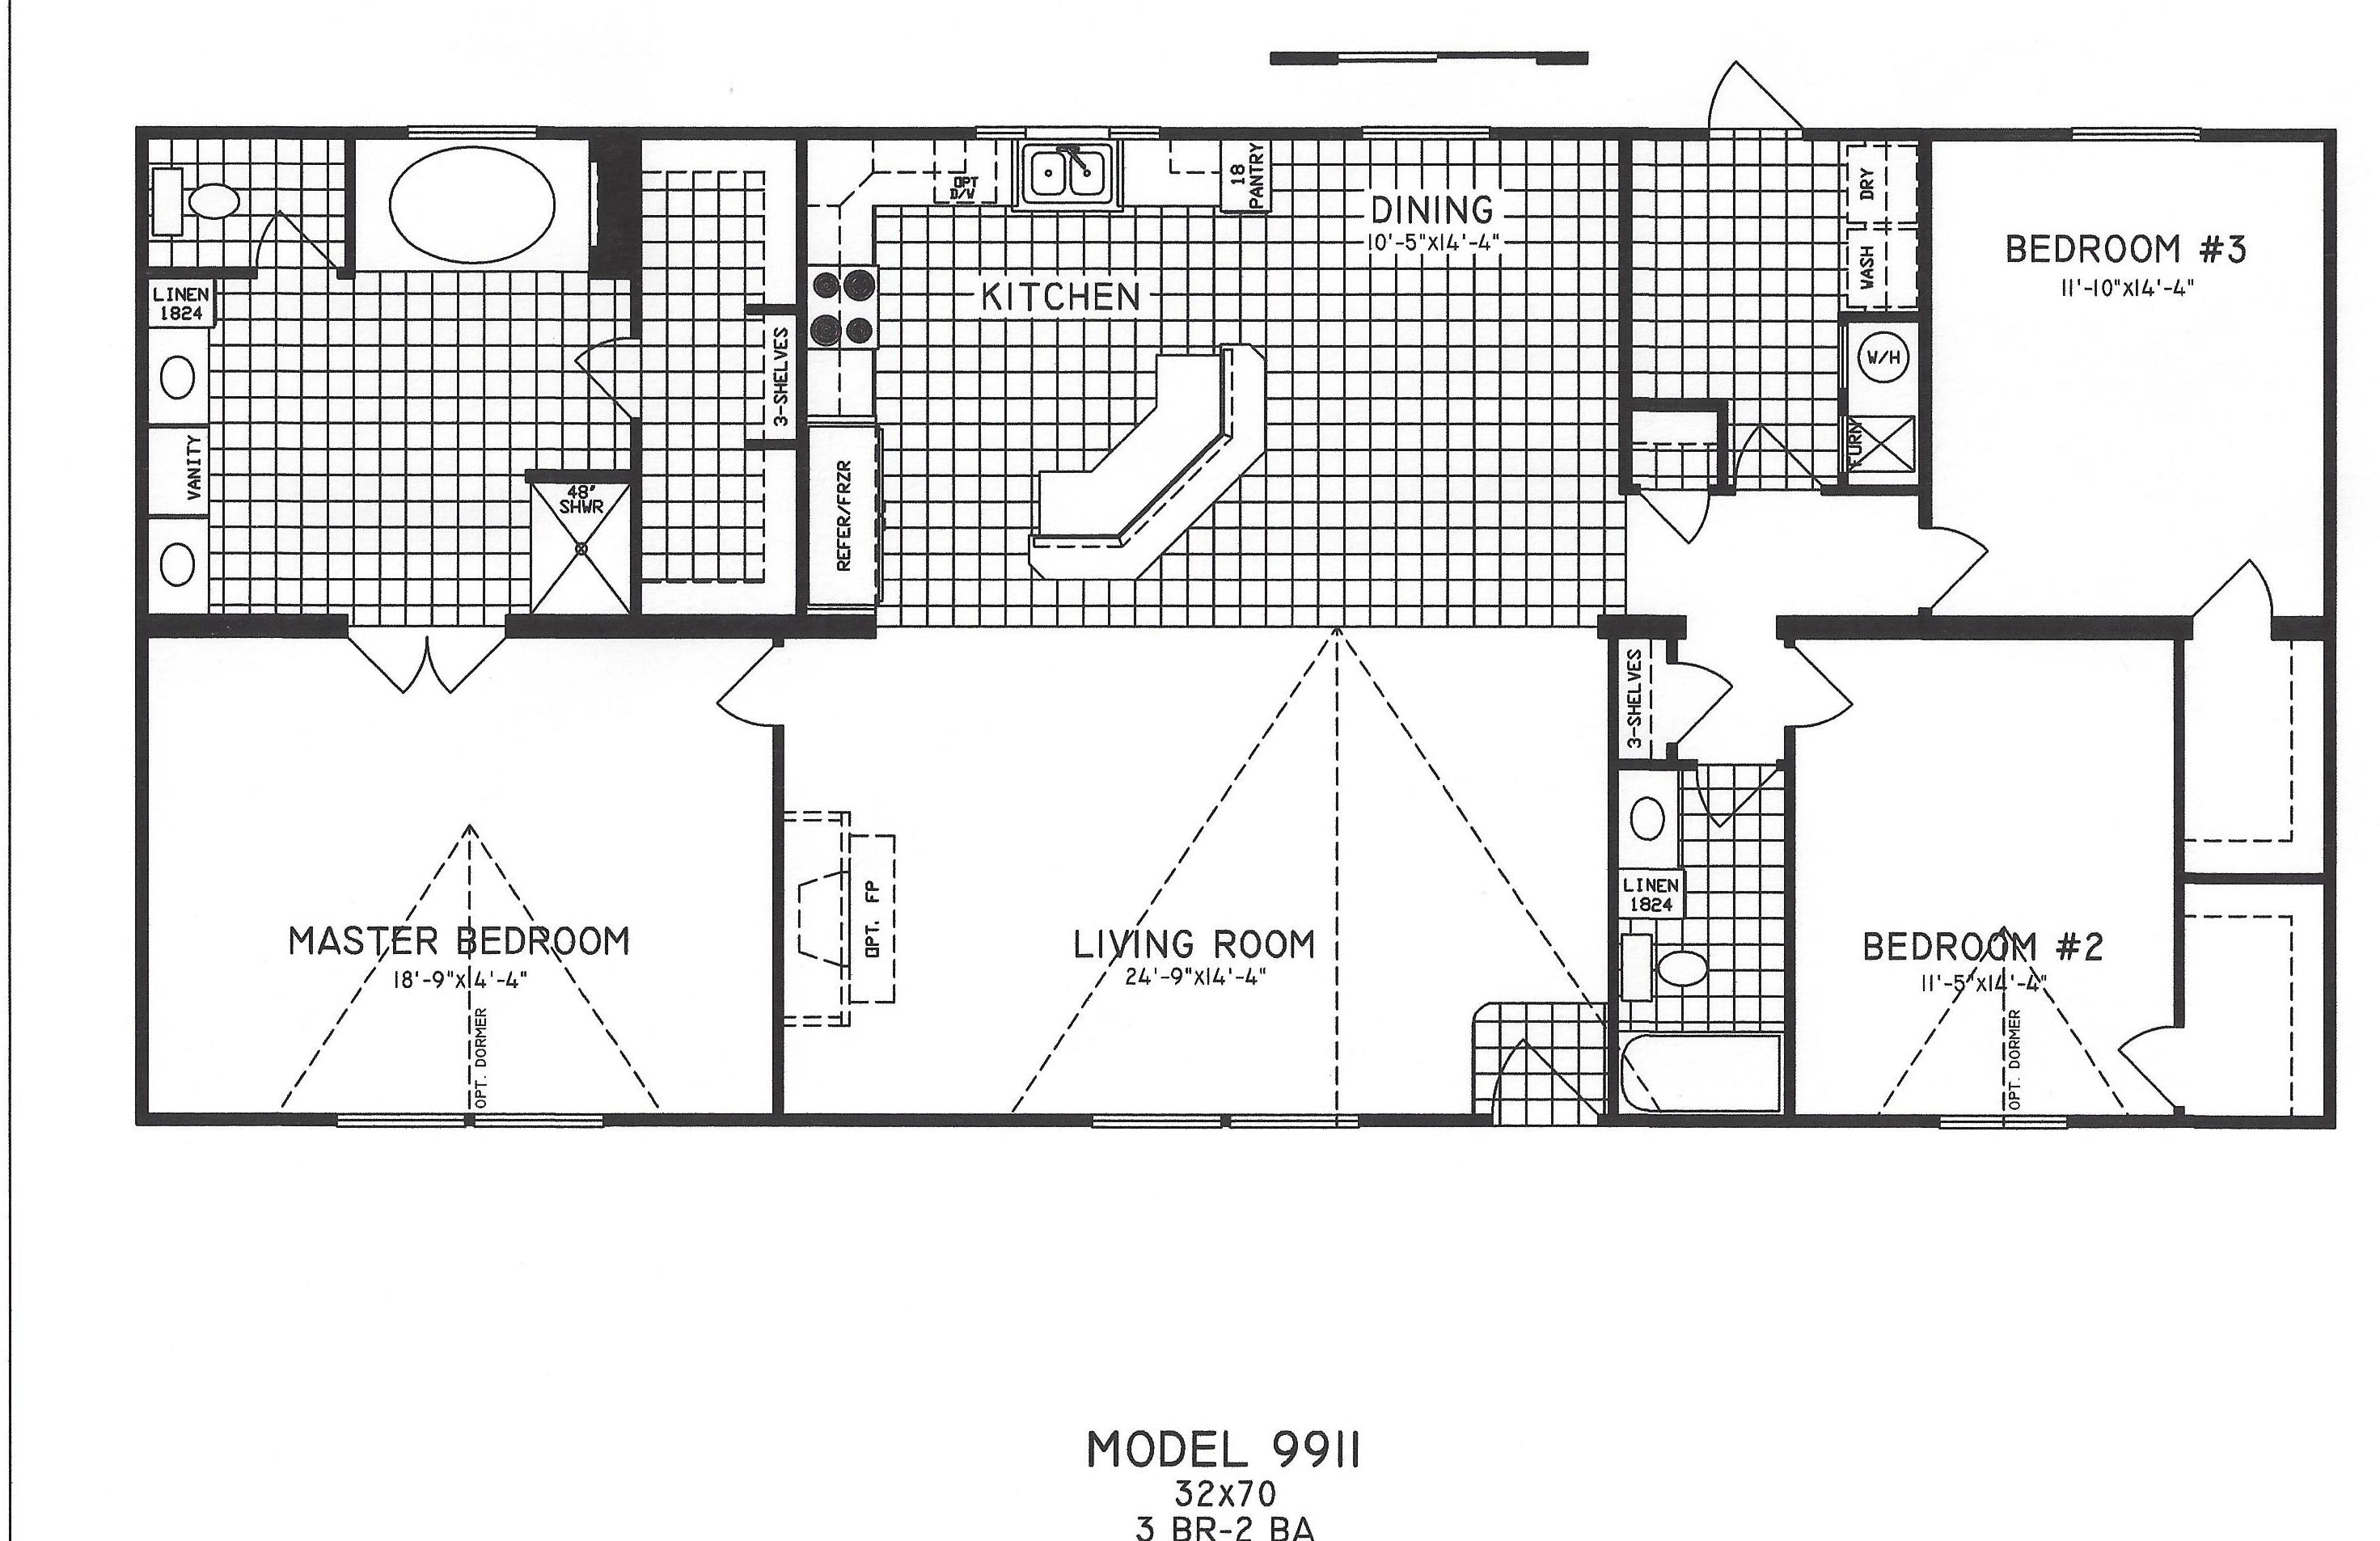 3 bedroom floor plan c 9911 hawks homes manufactured for 3 bedroom 2 bath double wide floor plans